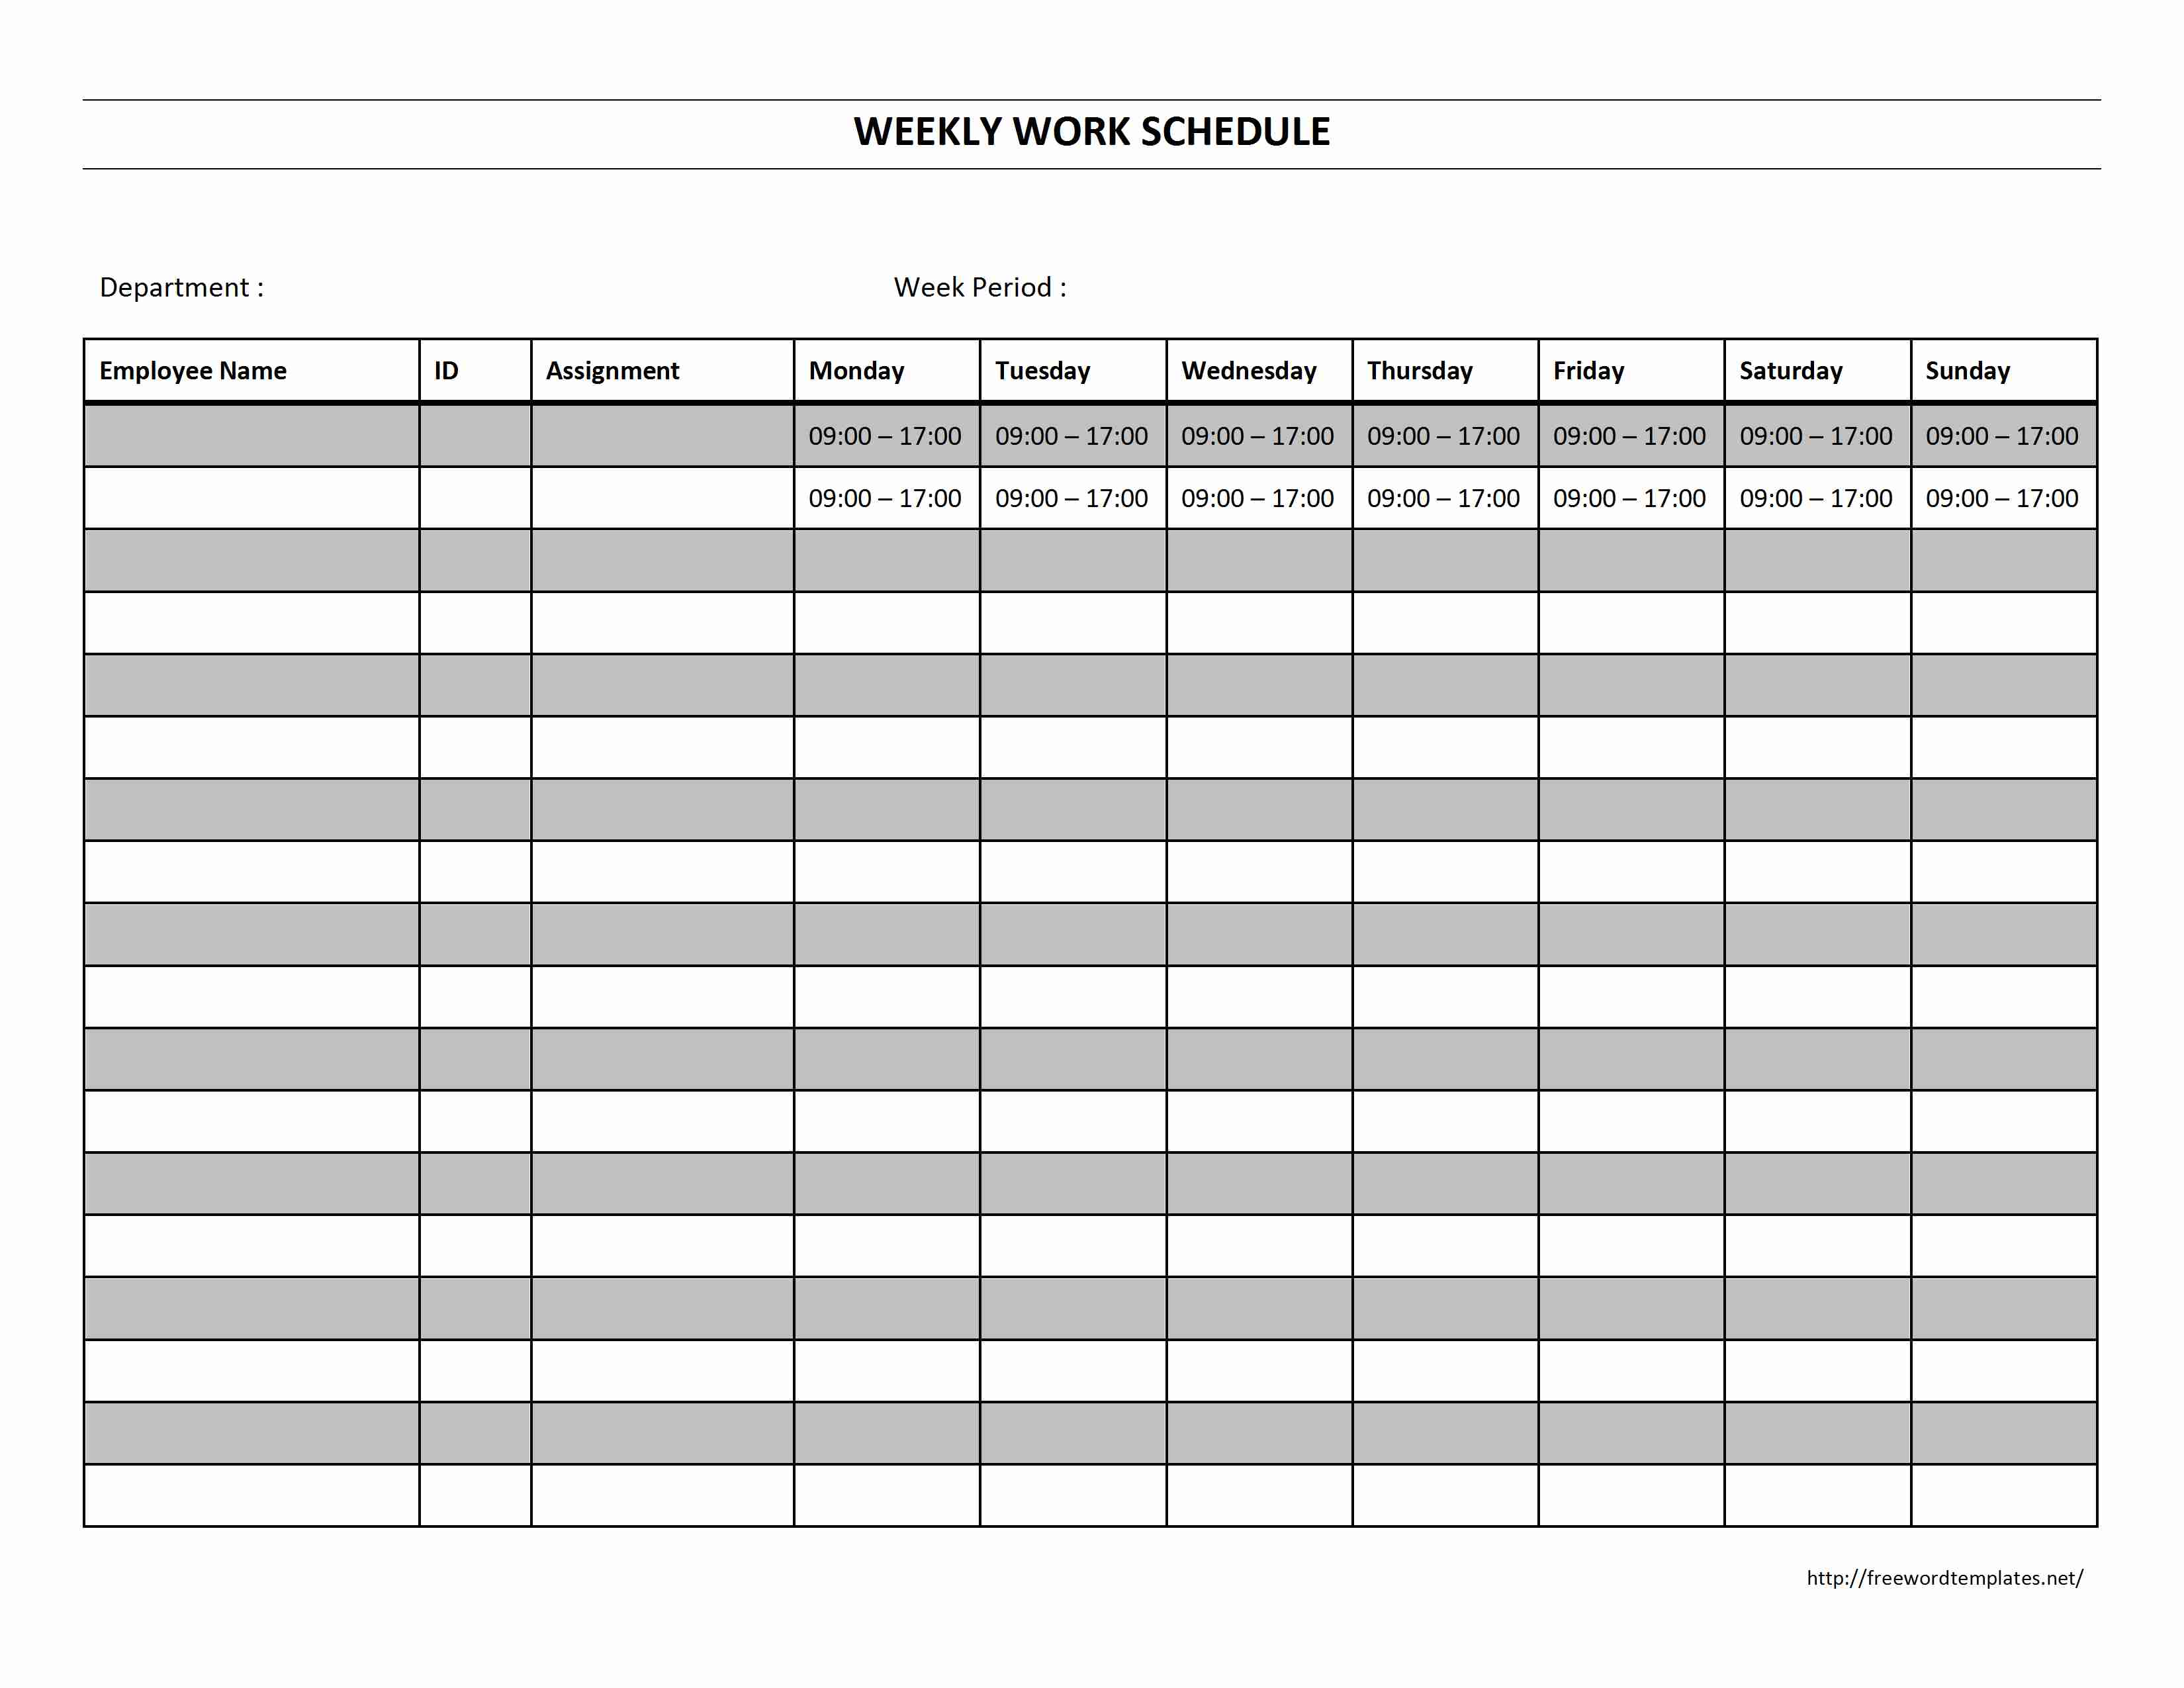 Weekly Work Schedule Template for Word